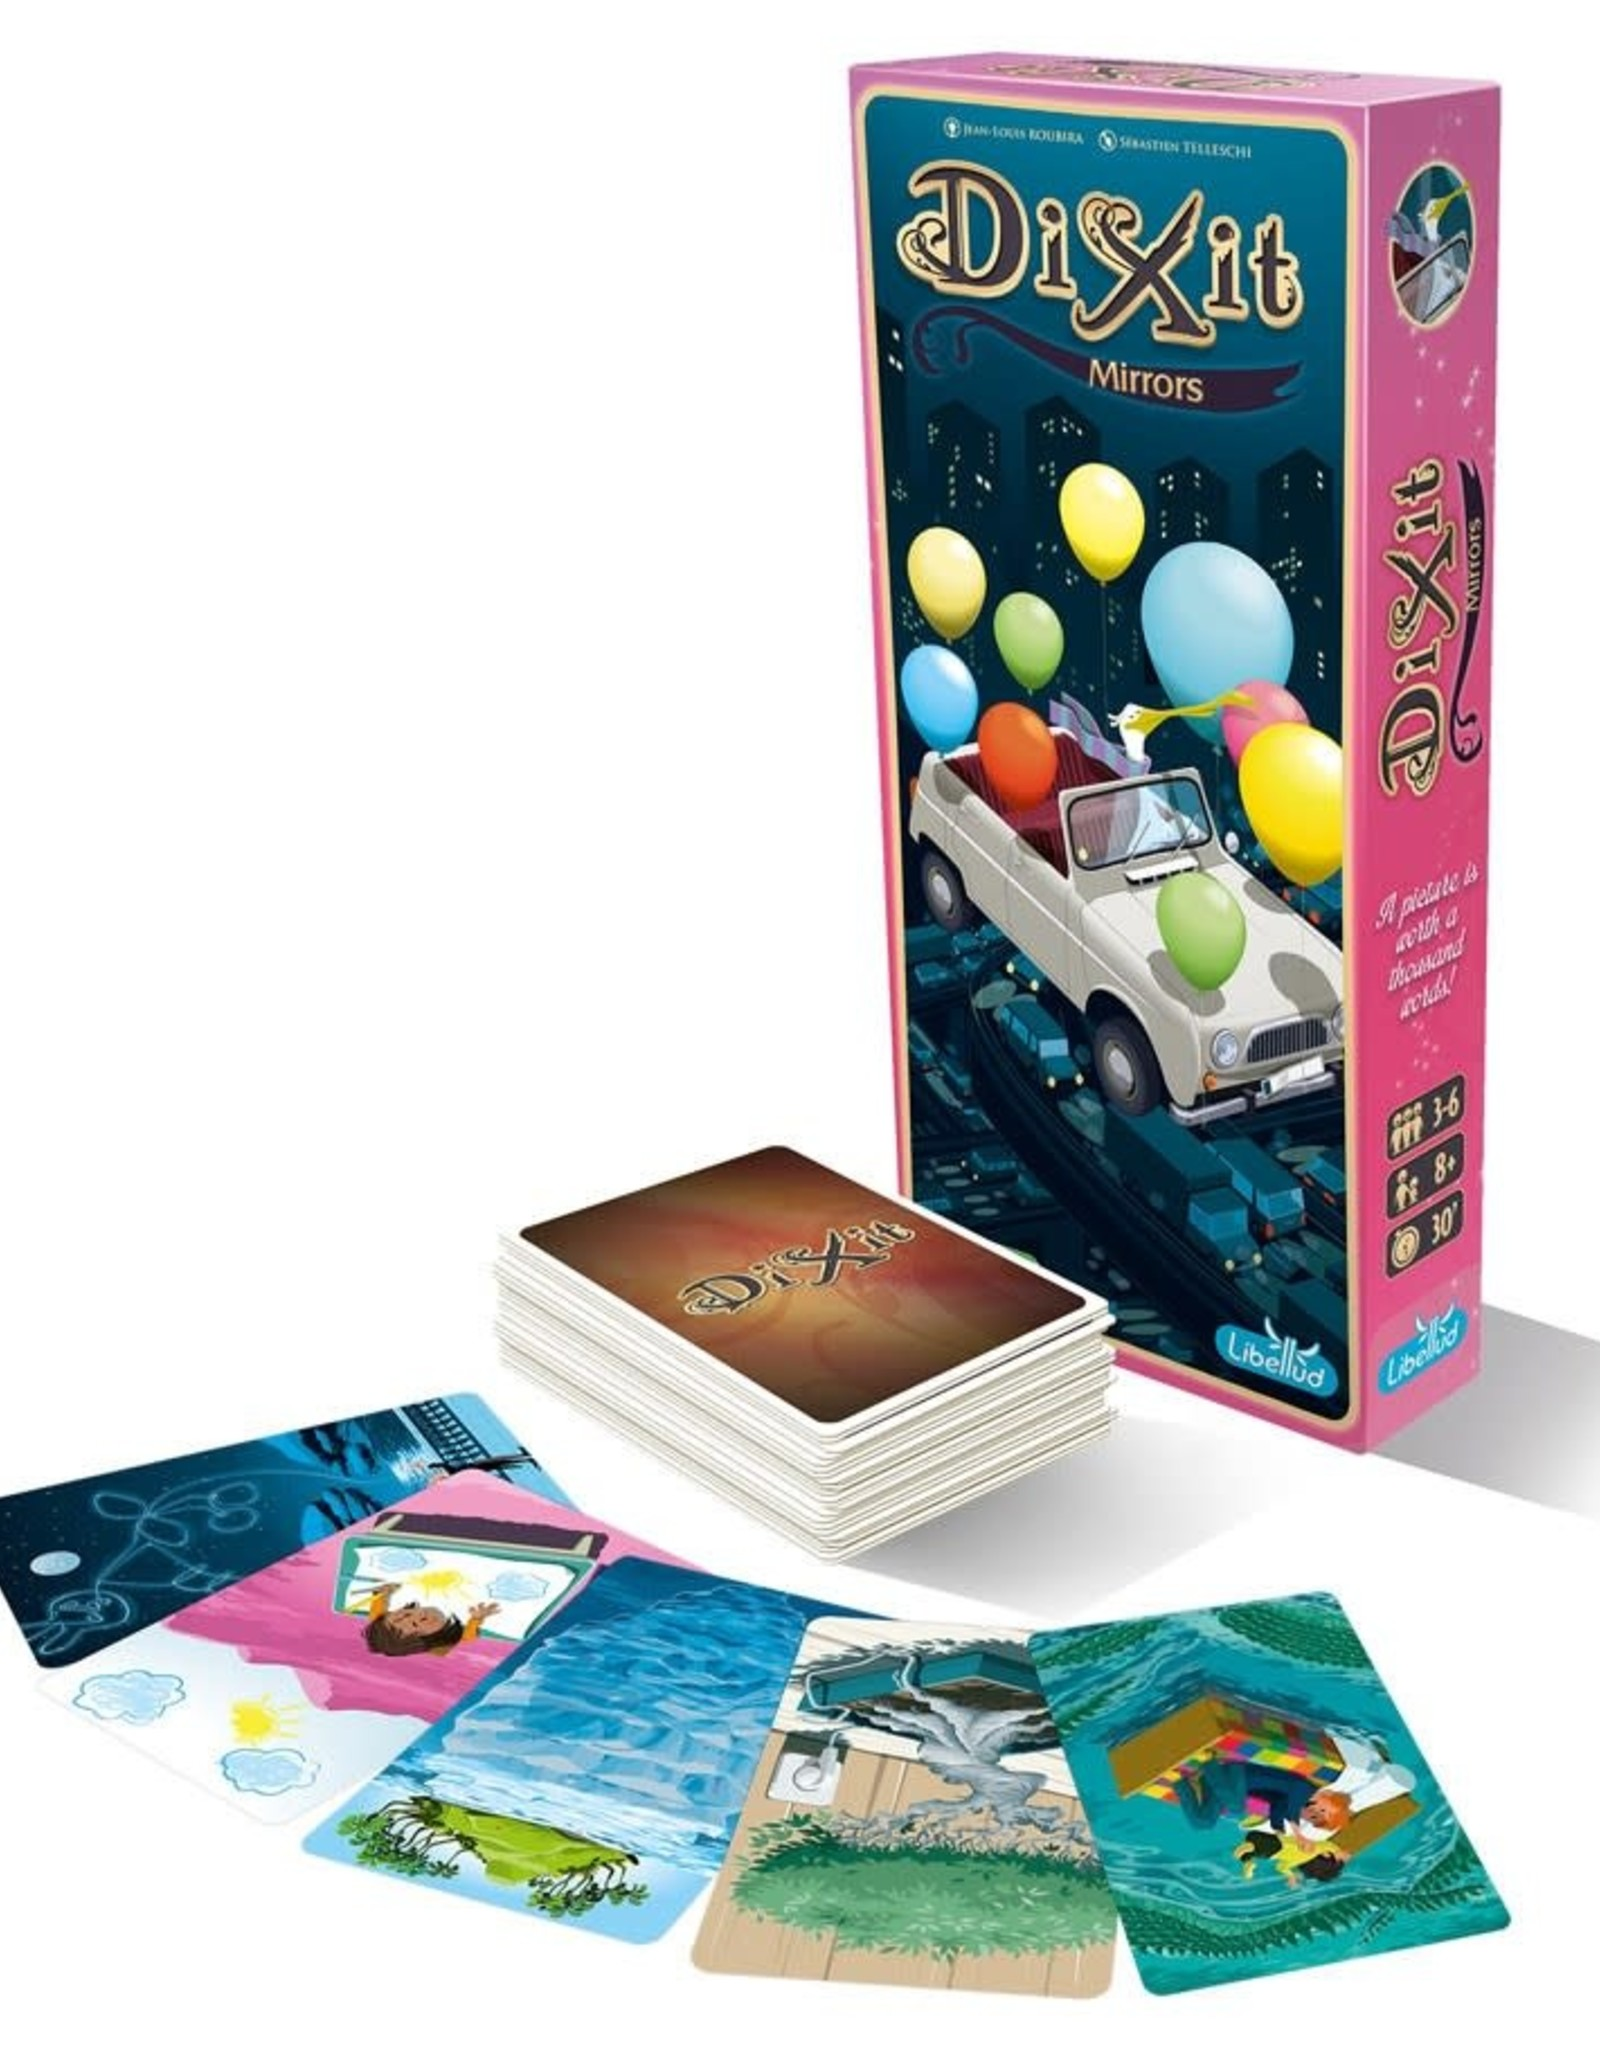 Dixit Mirrors Expansion